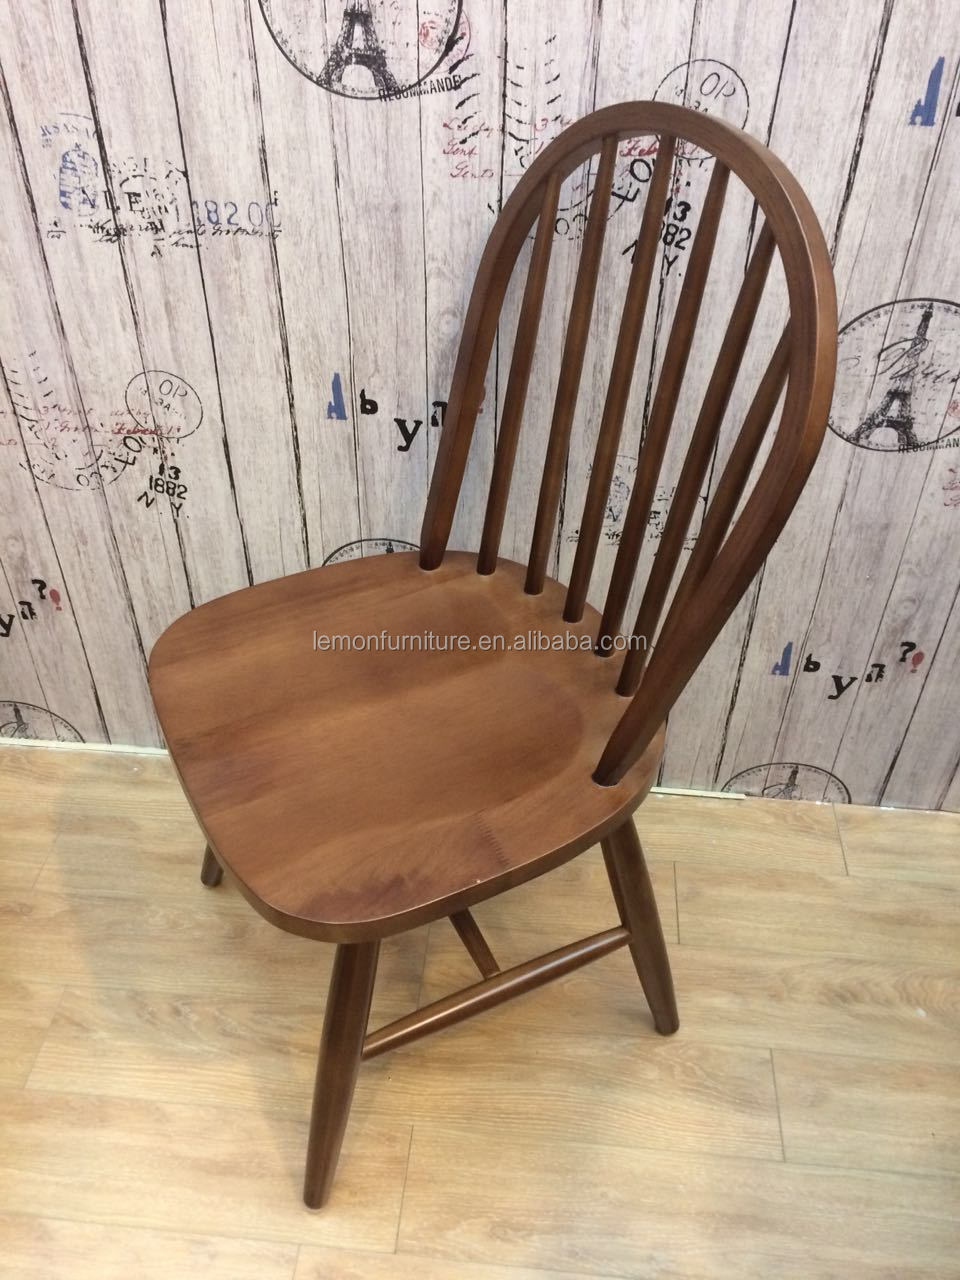 Foshan furniture oak wood chair restaurant dining chair